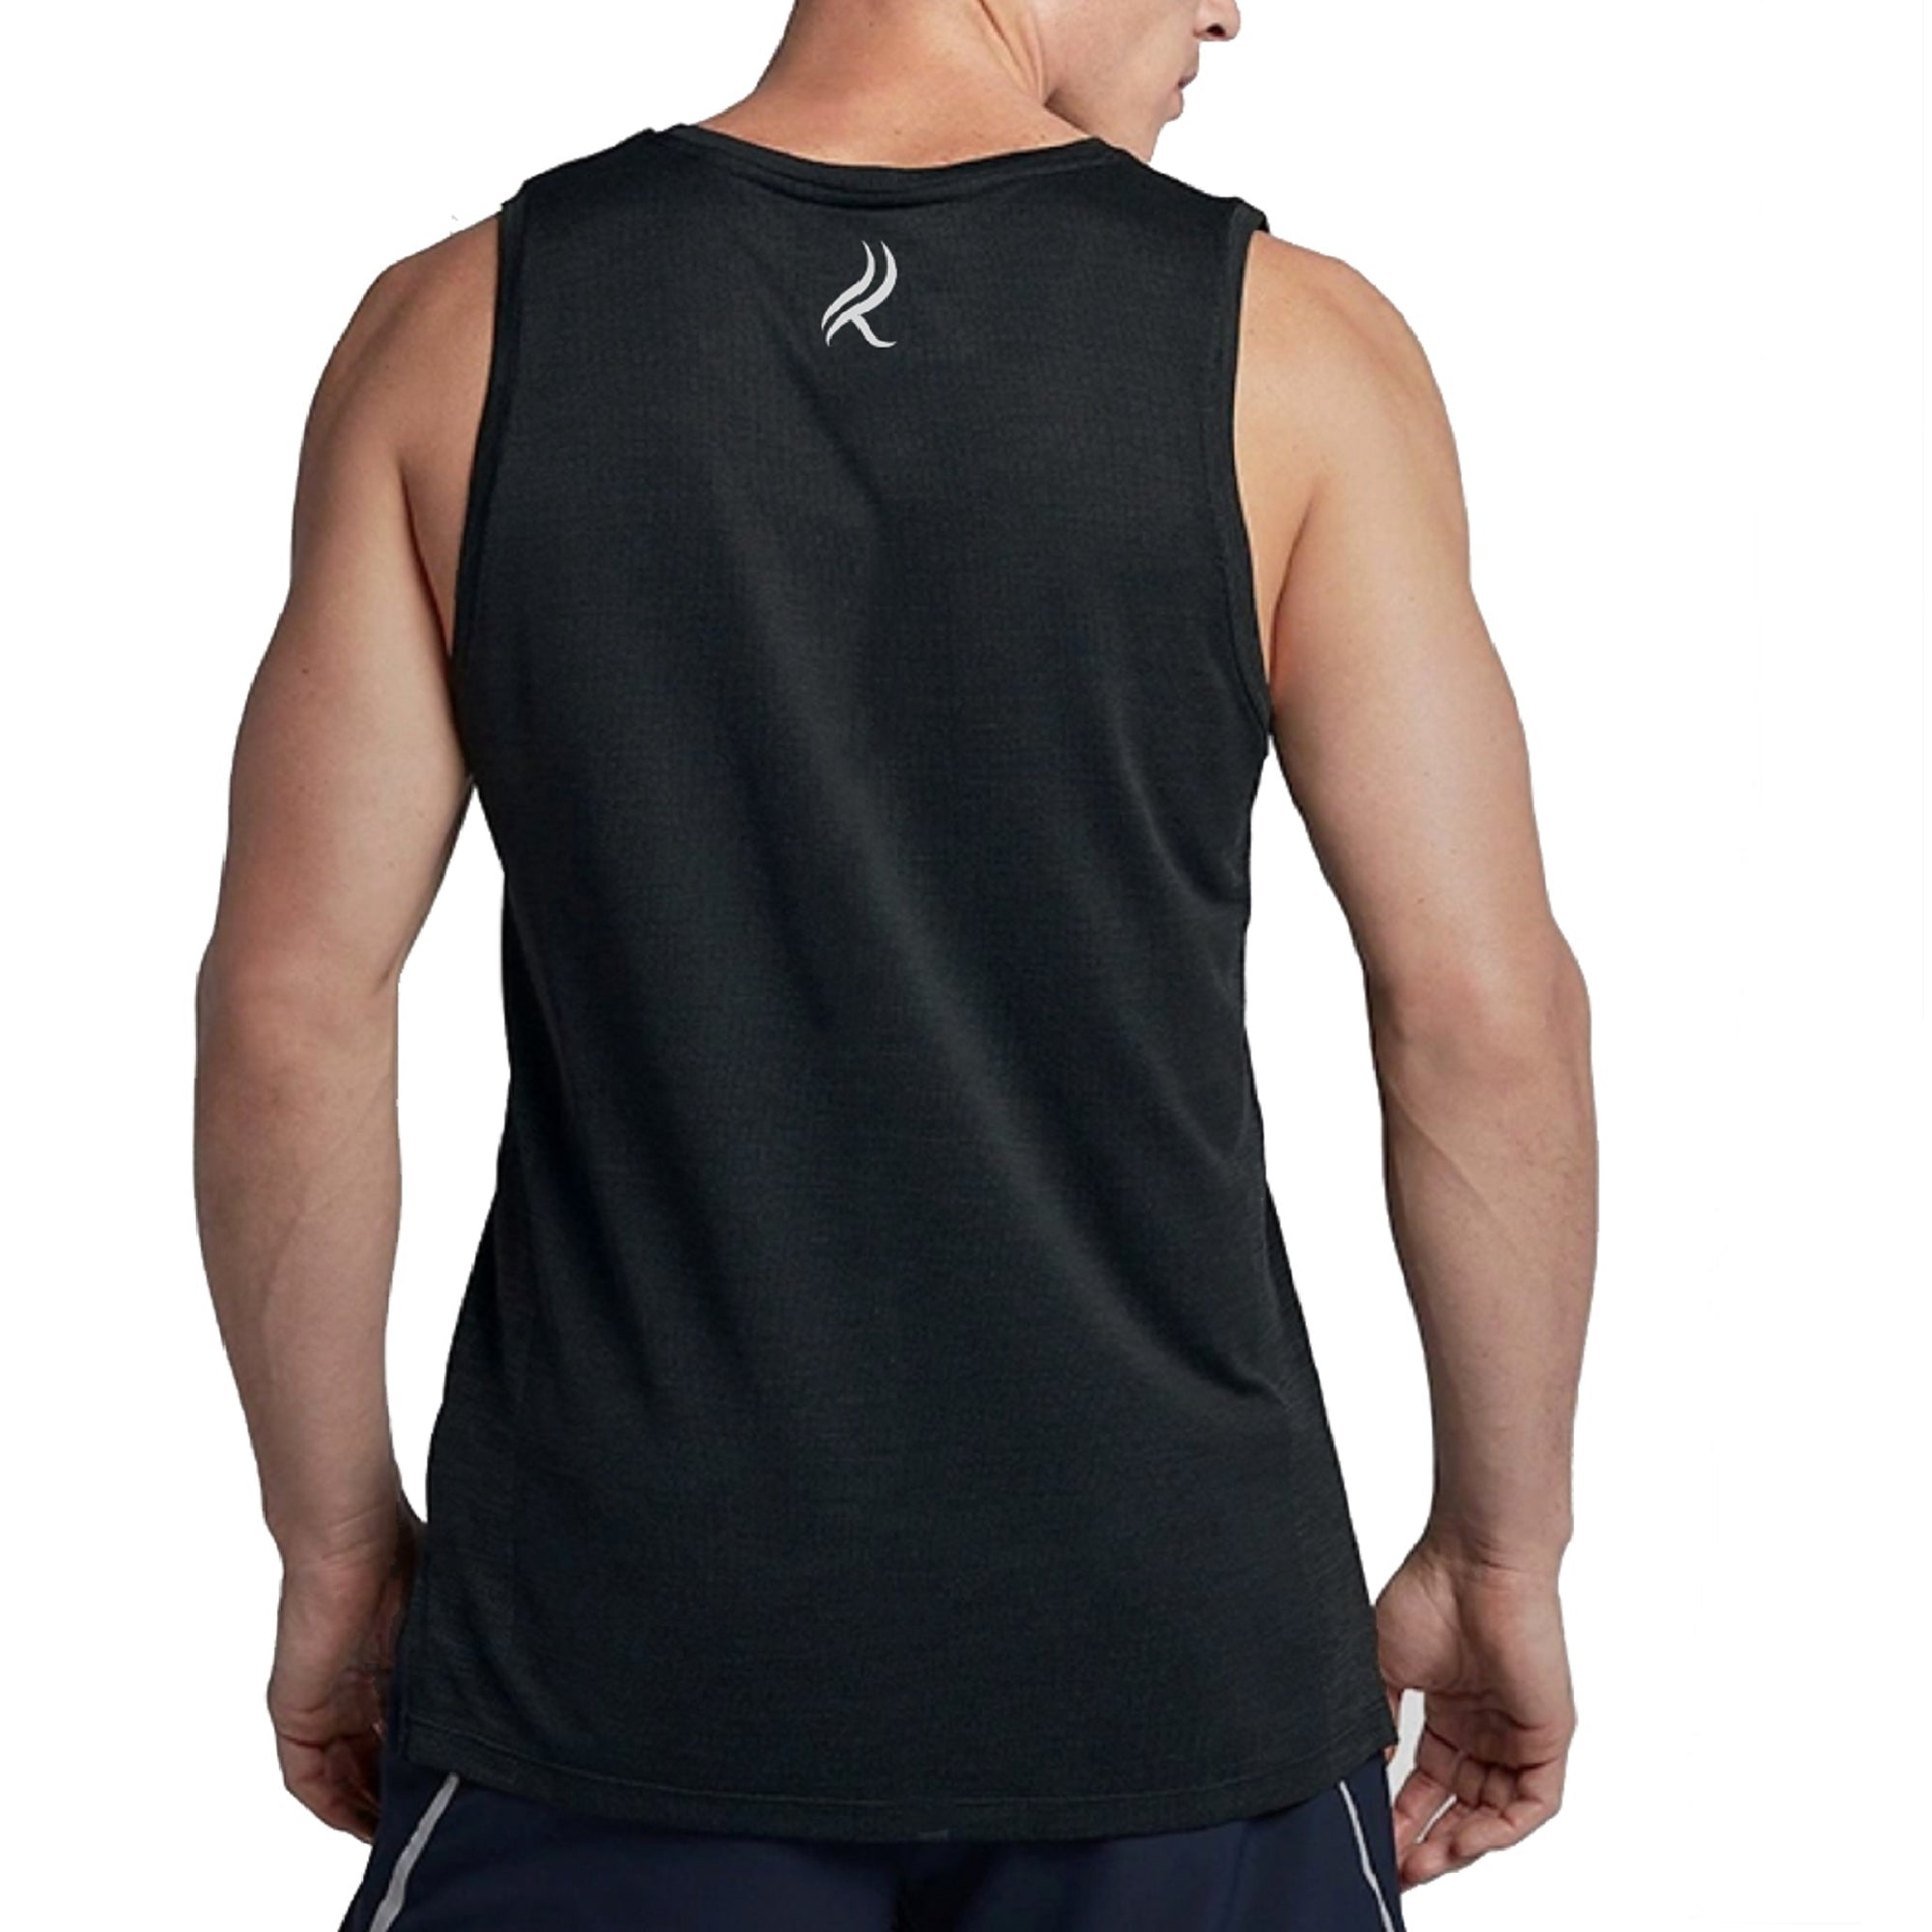 Kobrelms-Men Tank Tops and Shirts-Men's Active Tank Top-Black / S